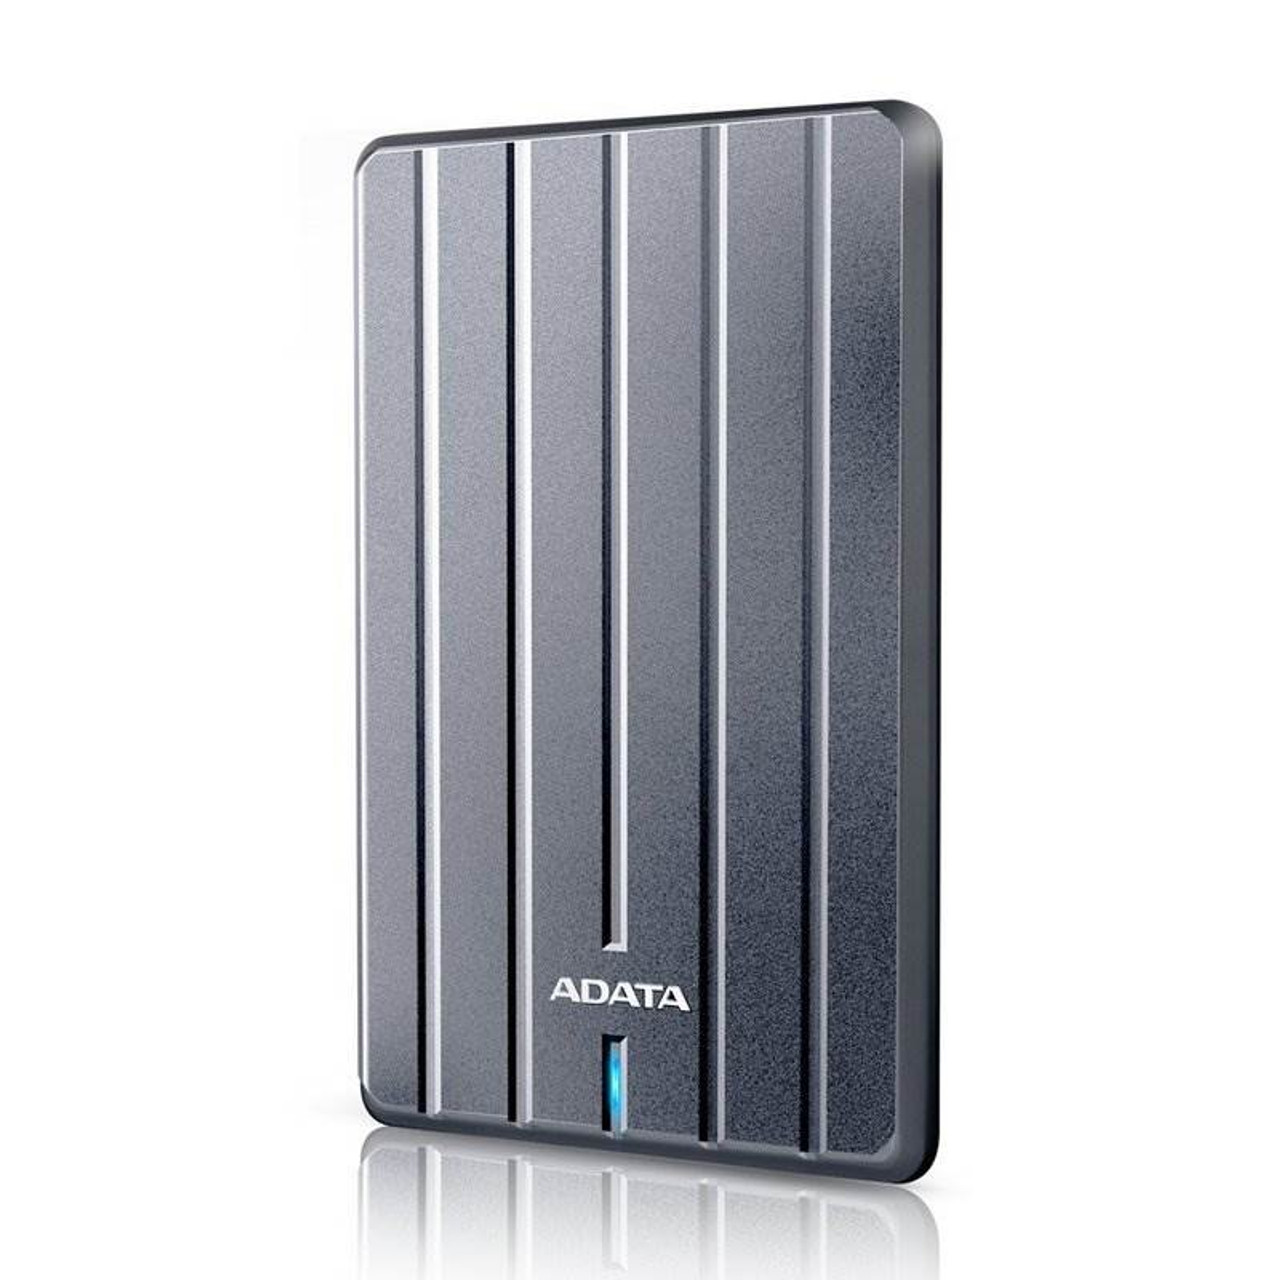 Image for Adata HC660 1TB Slim 9.6mm 2.5in USB 3.0 Portable External Hard Drive - Titanium CX Computer Superstore